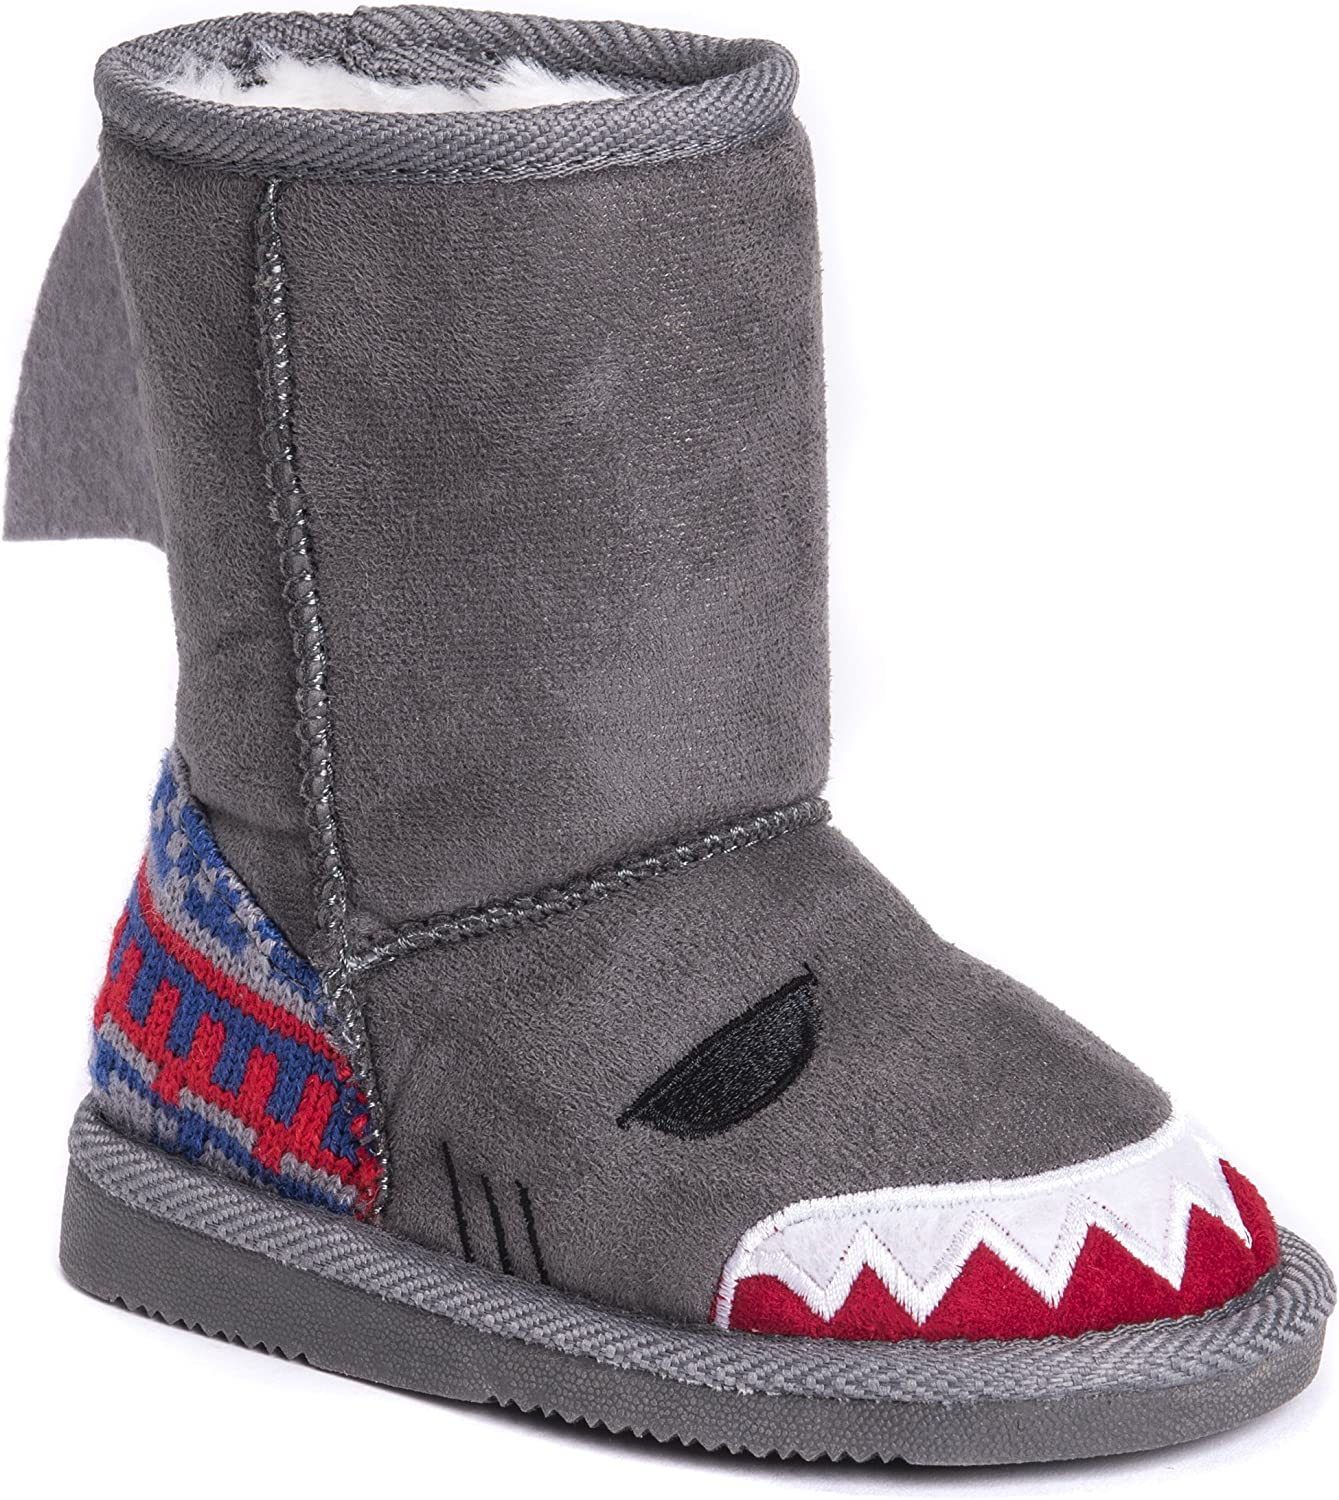 MUK LUKS Kids Finn Shark Boots Fashion